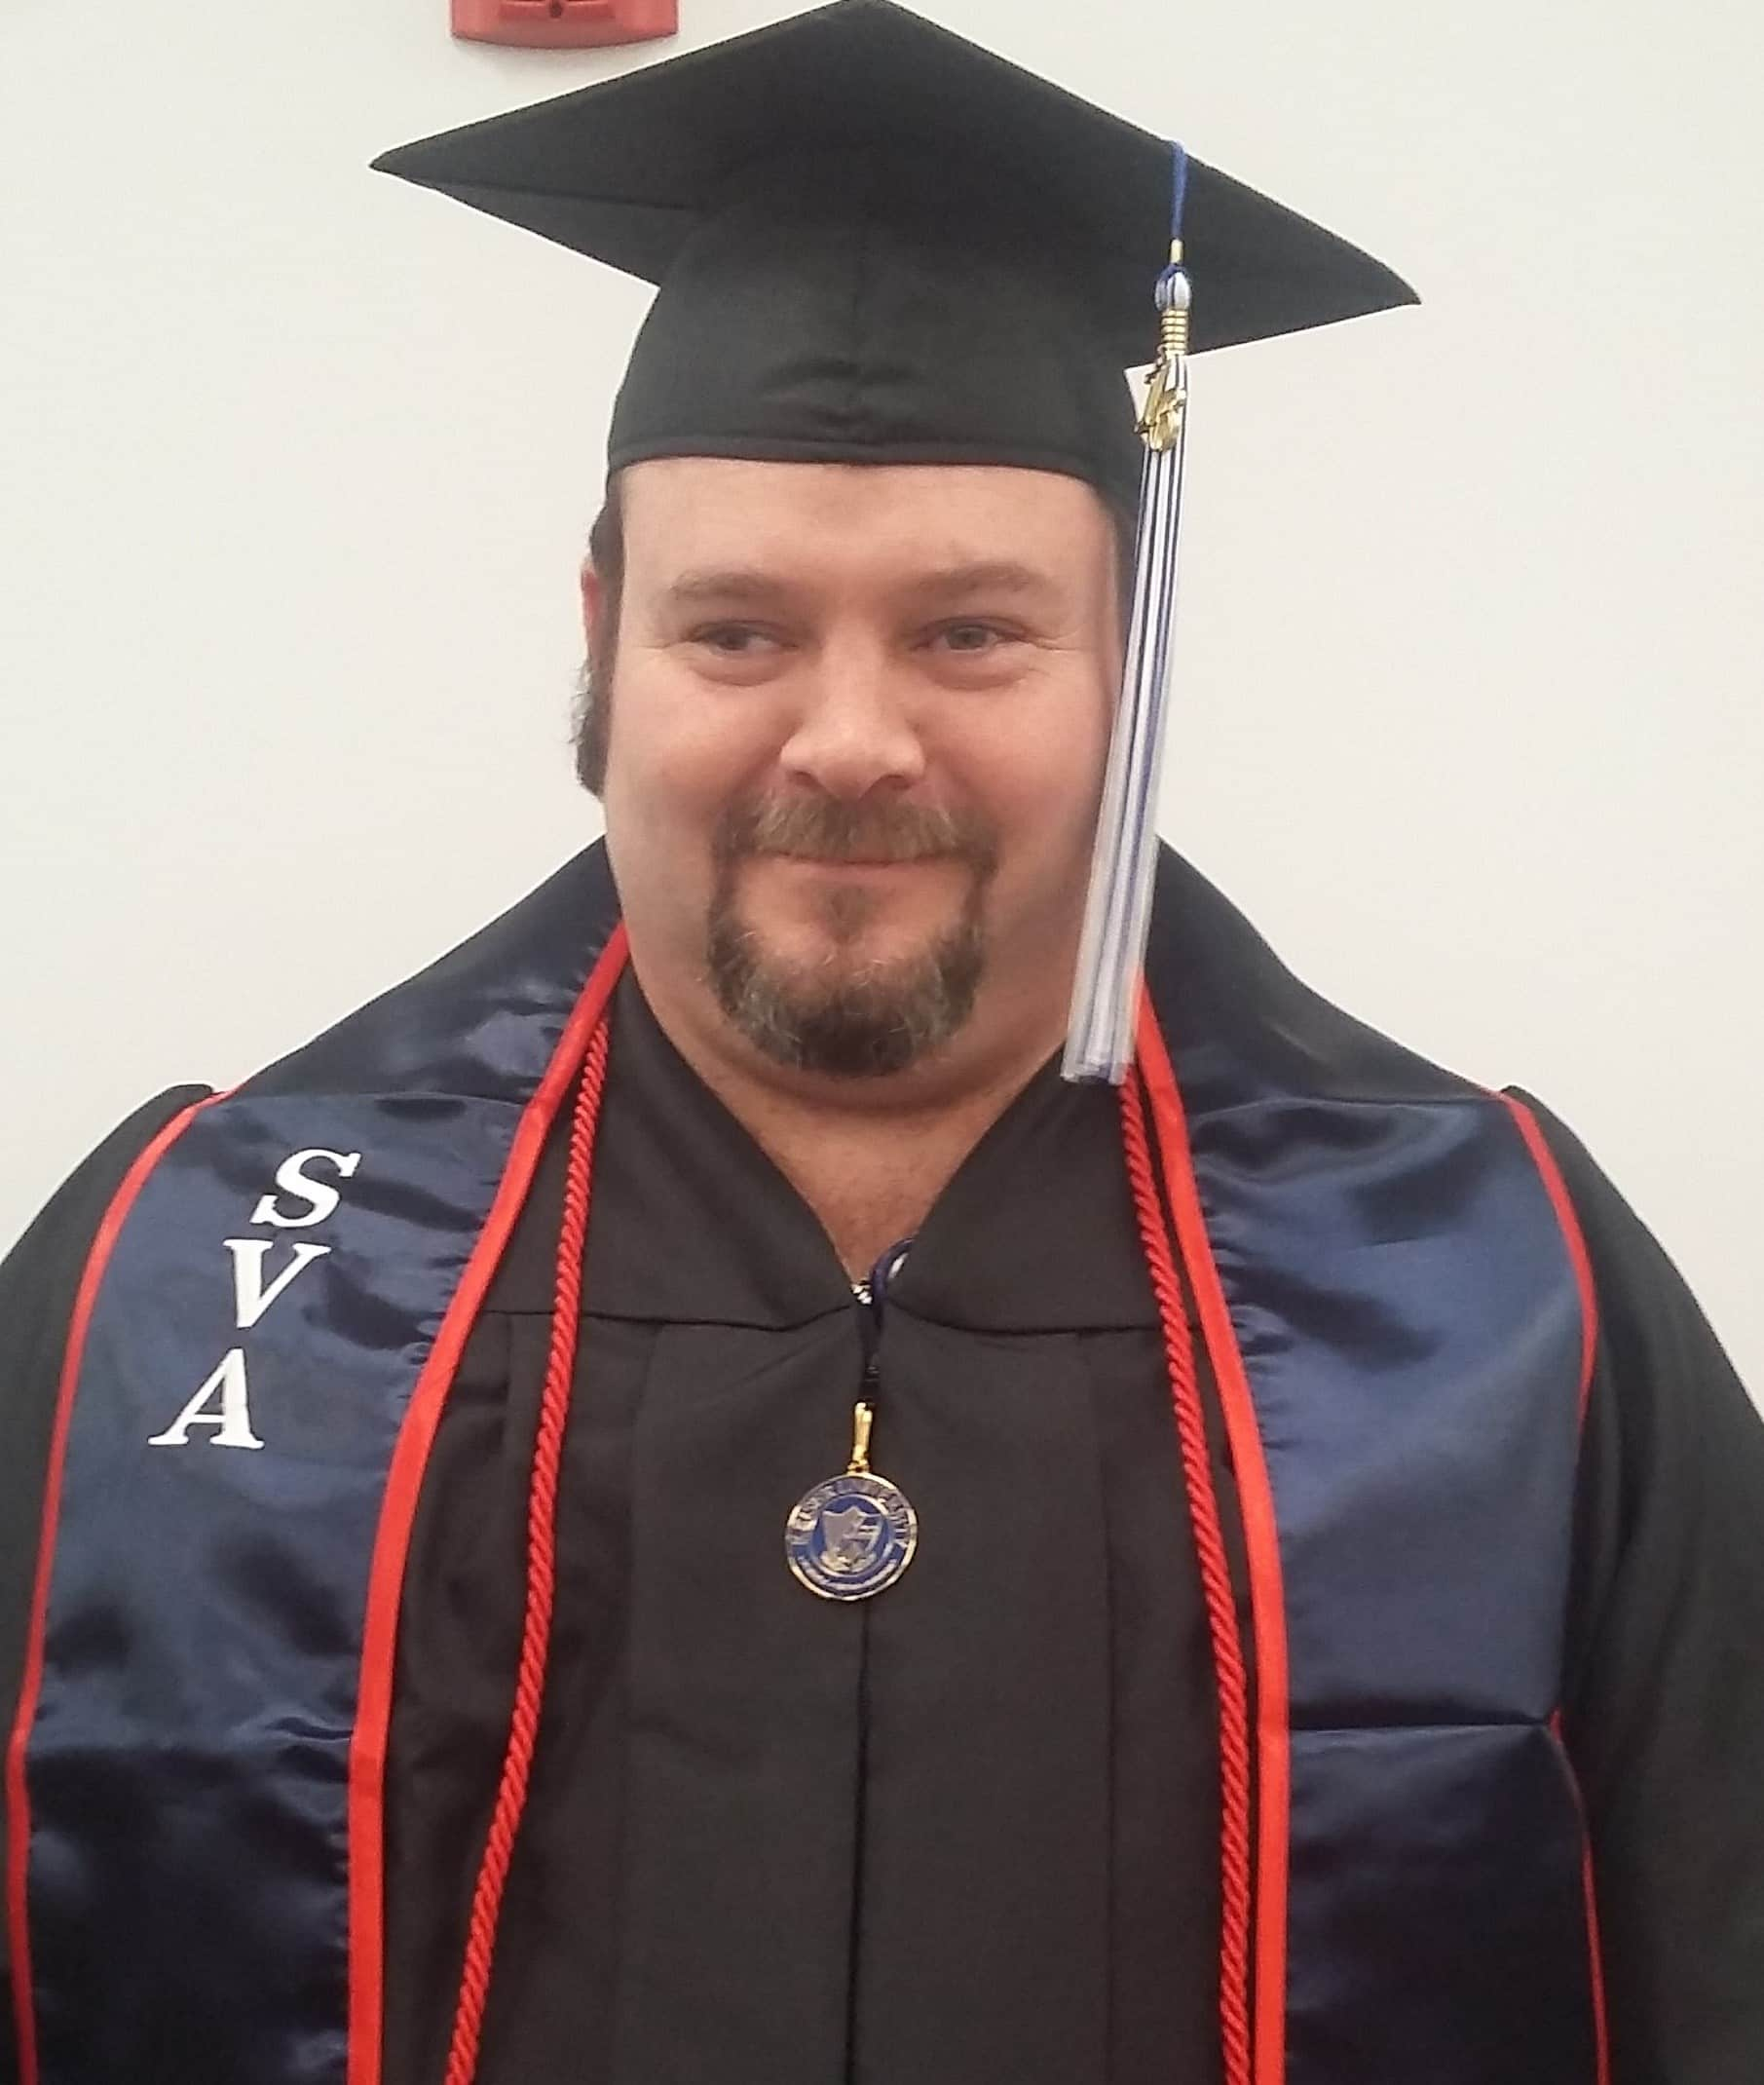 GRADUATE SPOTLIGHT for #NursesWeek – Steven Grenville, AS in Nursing, Melbourne campus